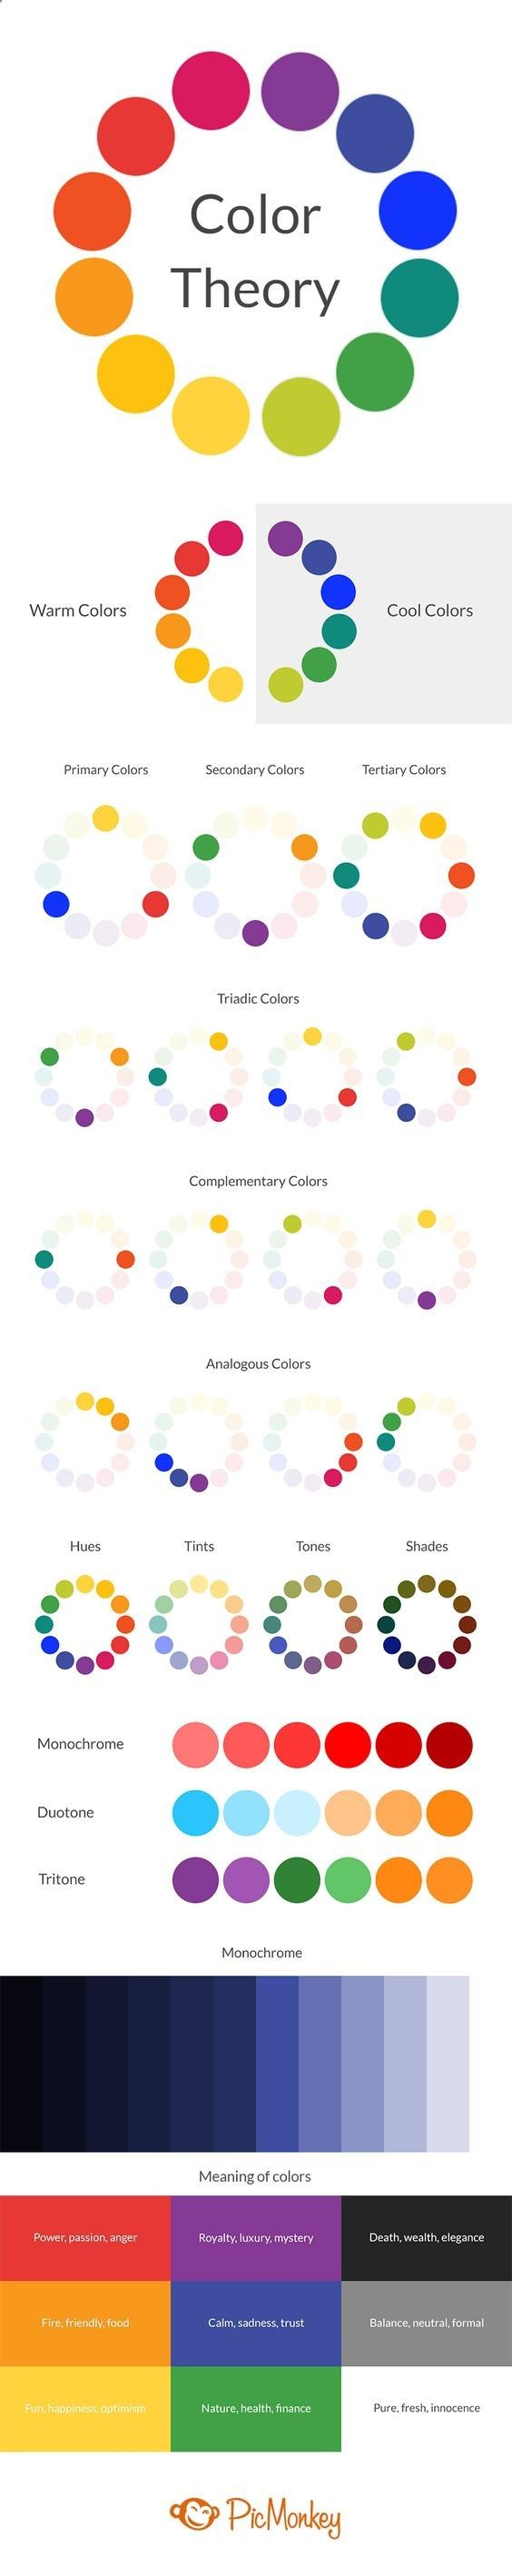 Color Theory: Choosing the Best Colors for Your Designs | Pic Monkey